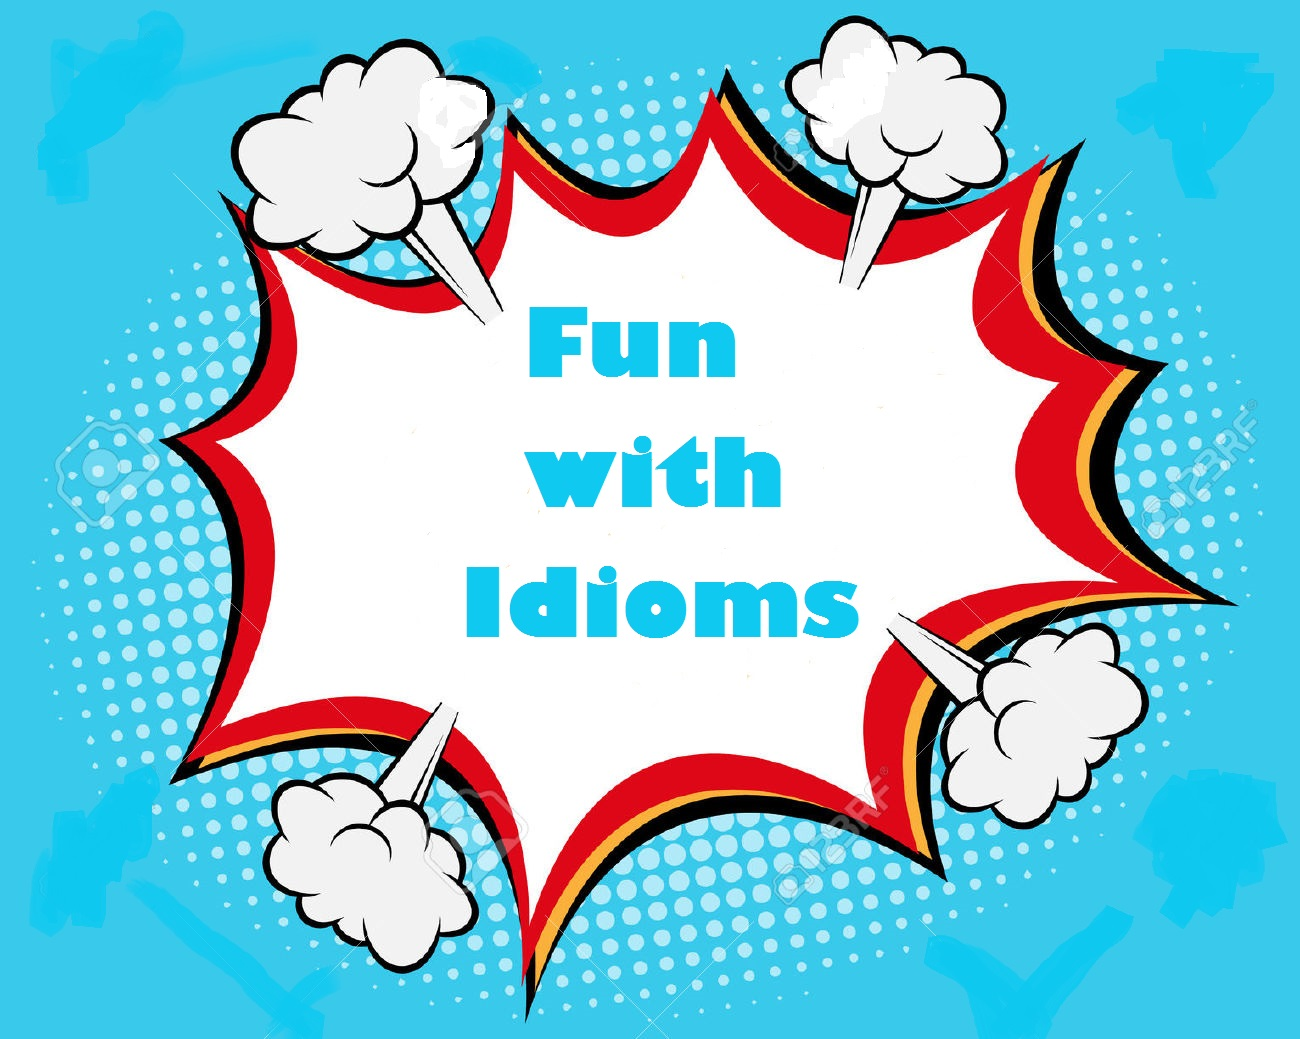 hight resolution of Fun with Idioms - ELT Connect